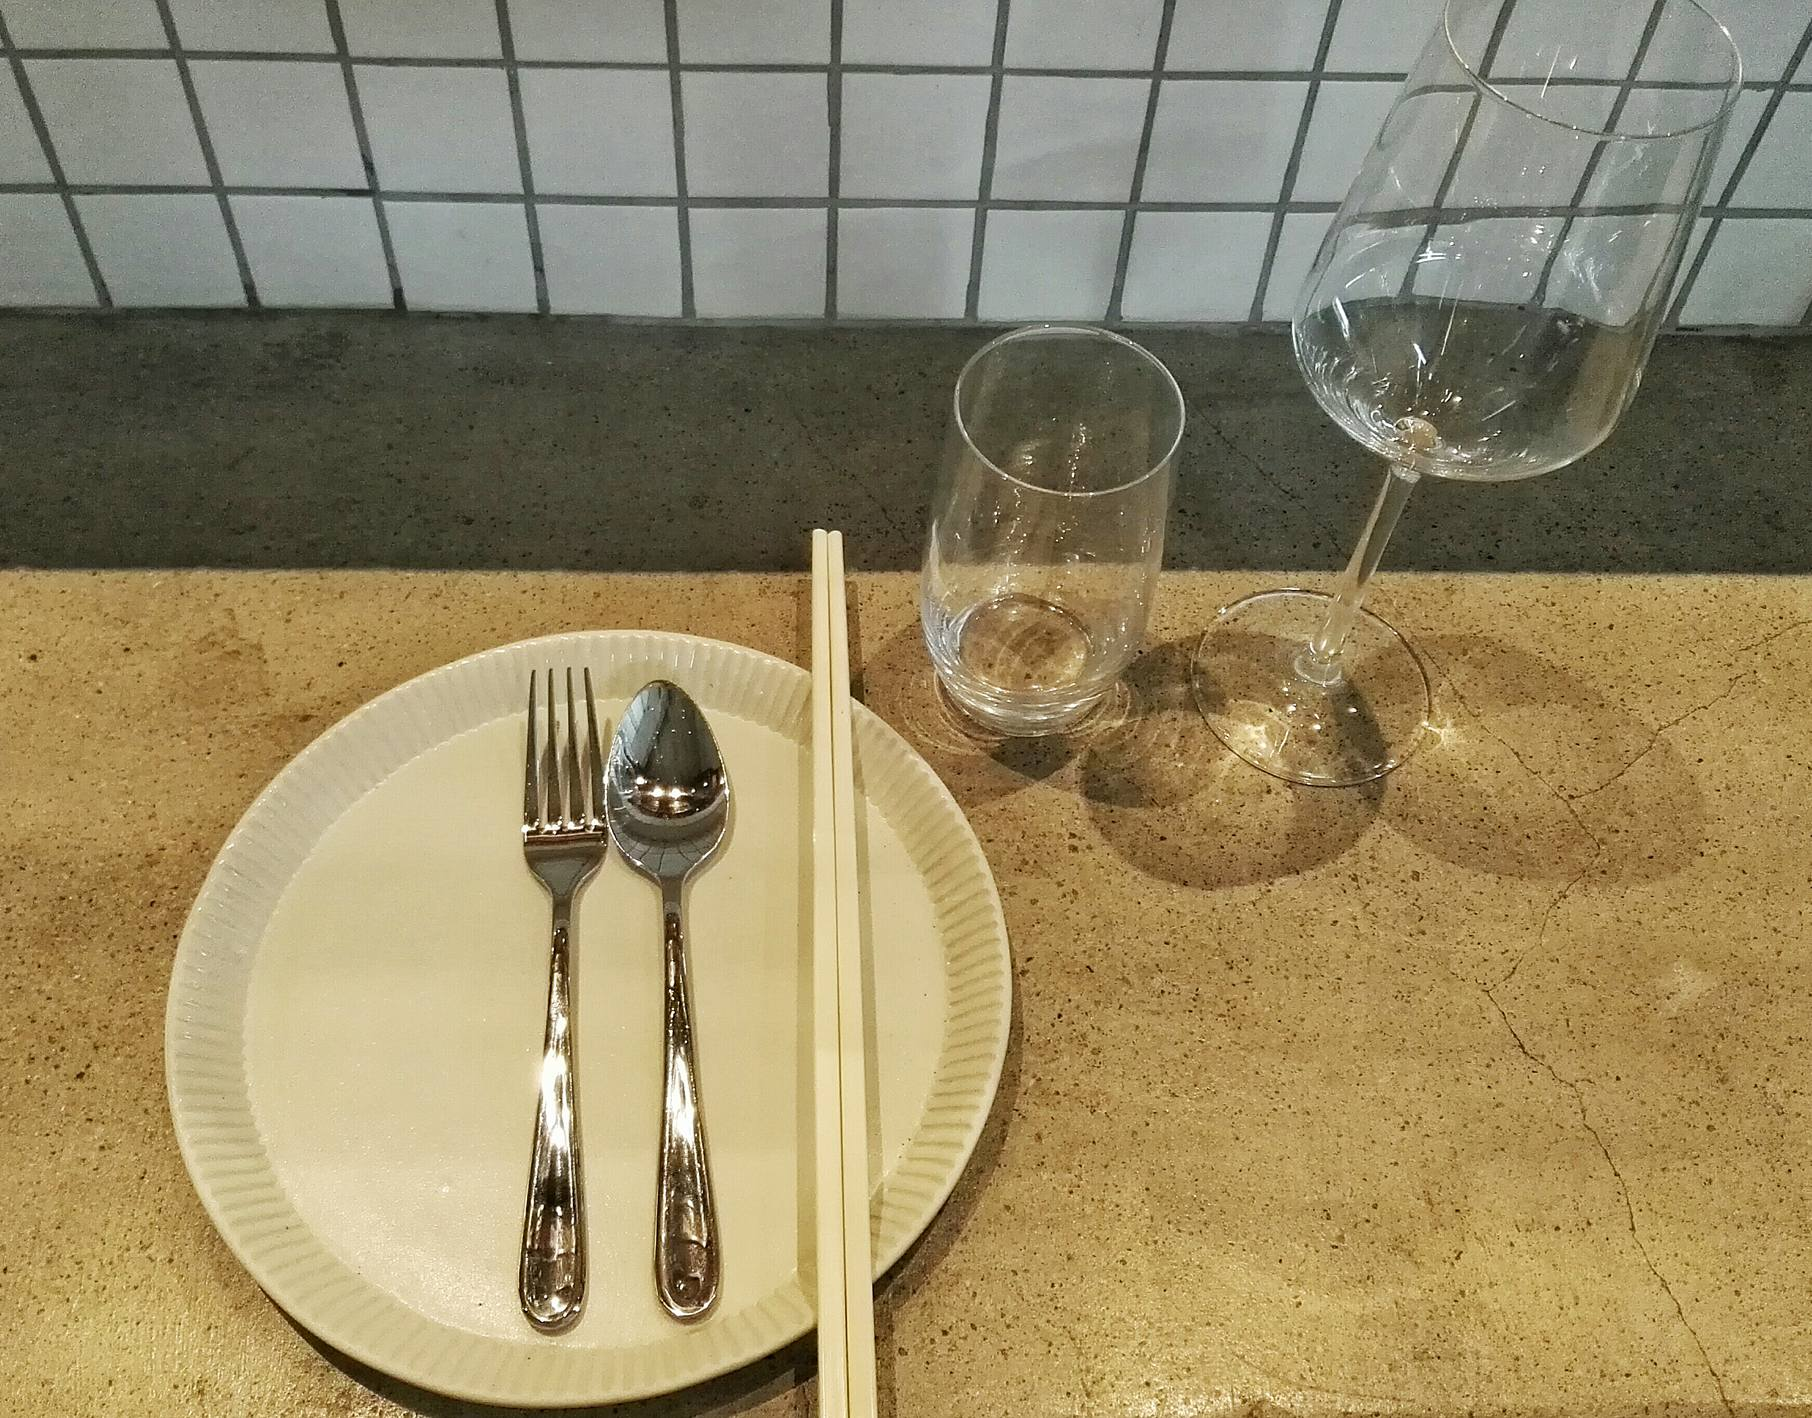 Hawker-Inspired Cutlery and Schott Zwiesel Wine Glass- Hey Handsome- Net Park BGC- Bonifacio Global City- Manila, Philippines